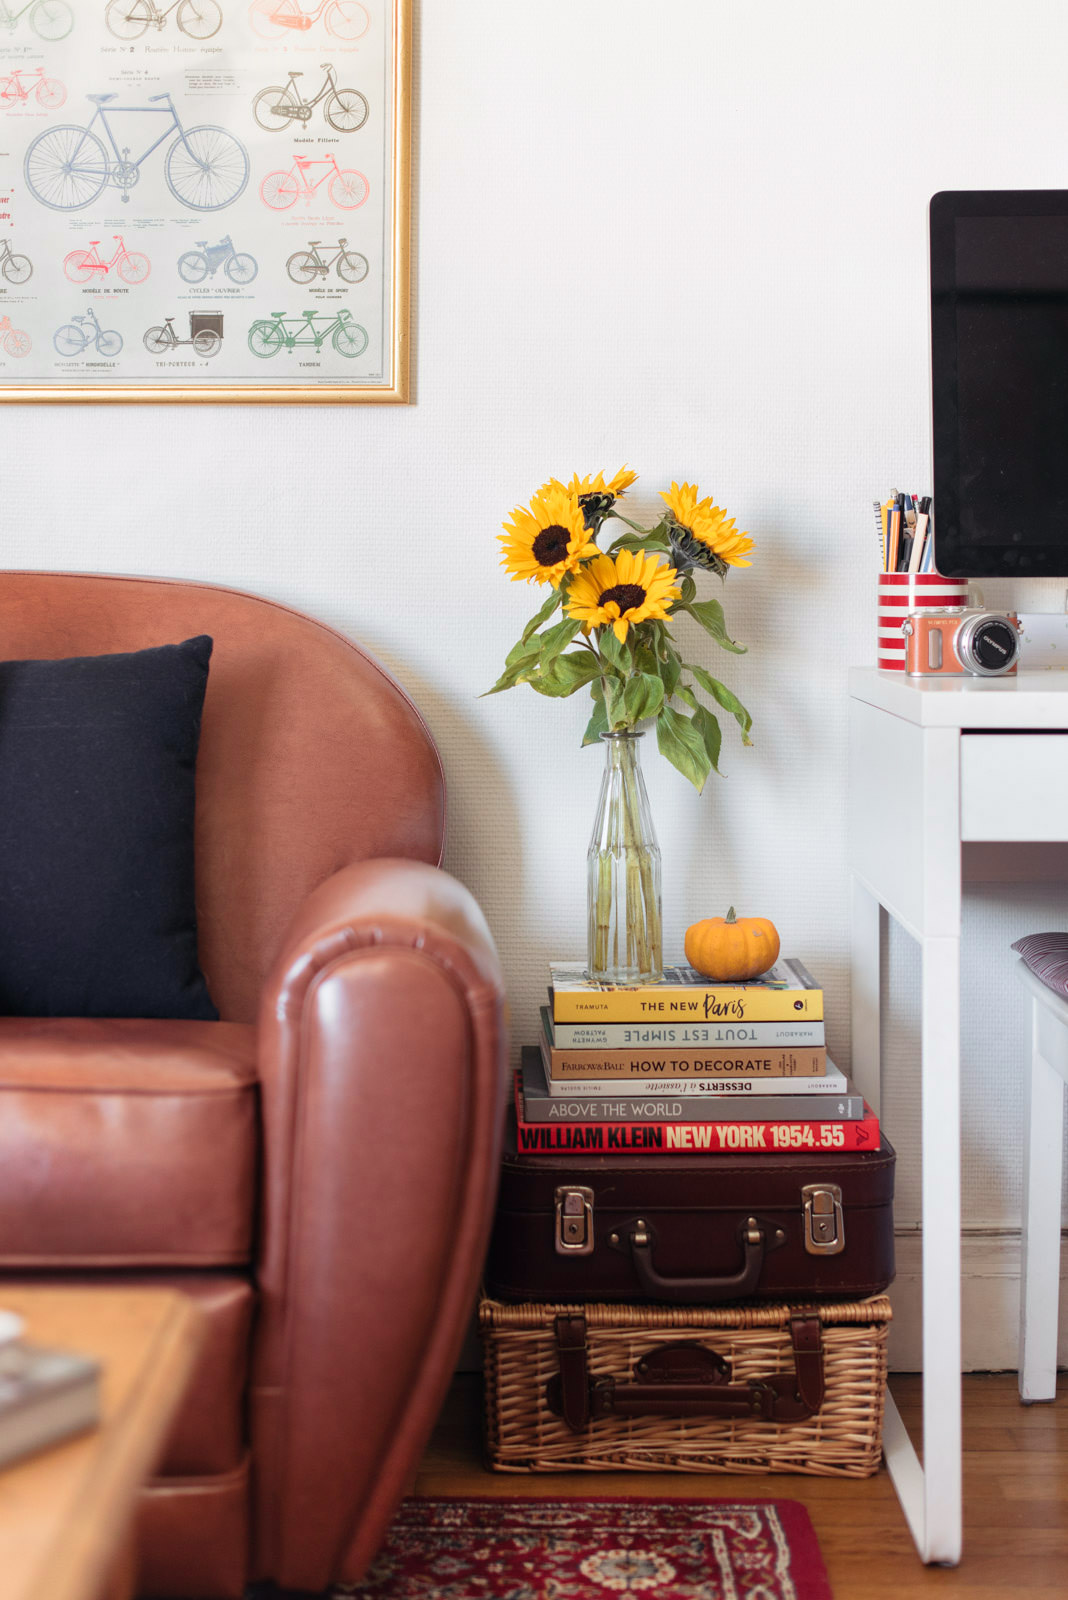 Blog-Mode-And-The-City-Lifestyle-Comment-Je-decore-notre-appartement-pour-automne-3